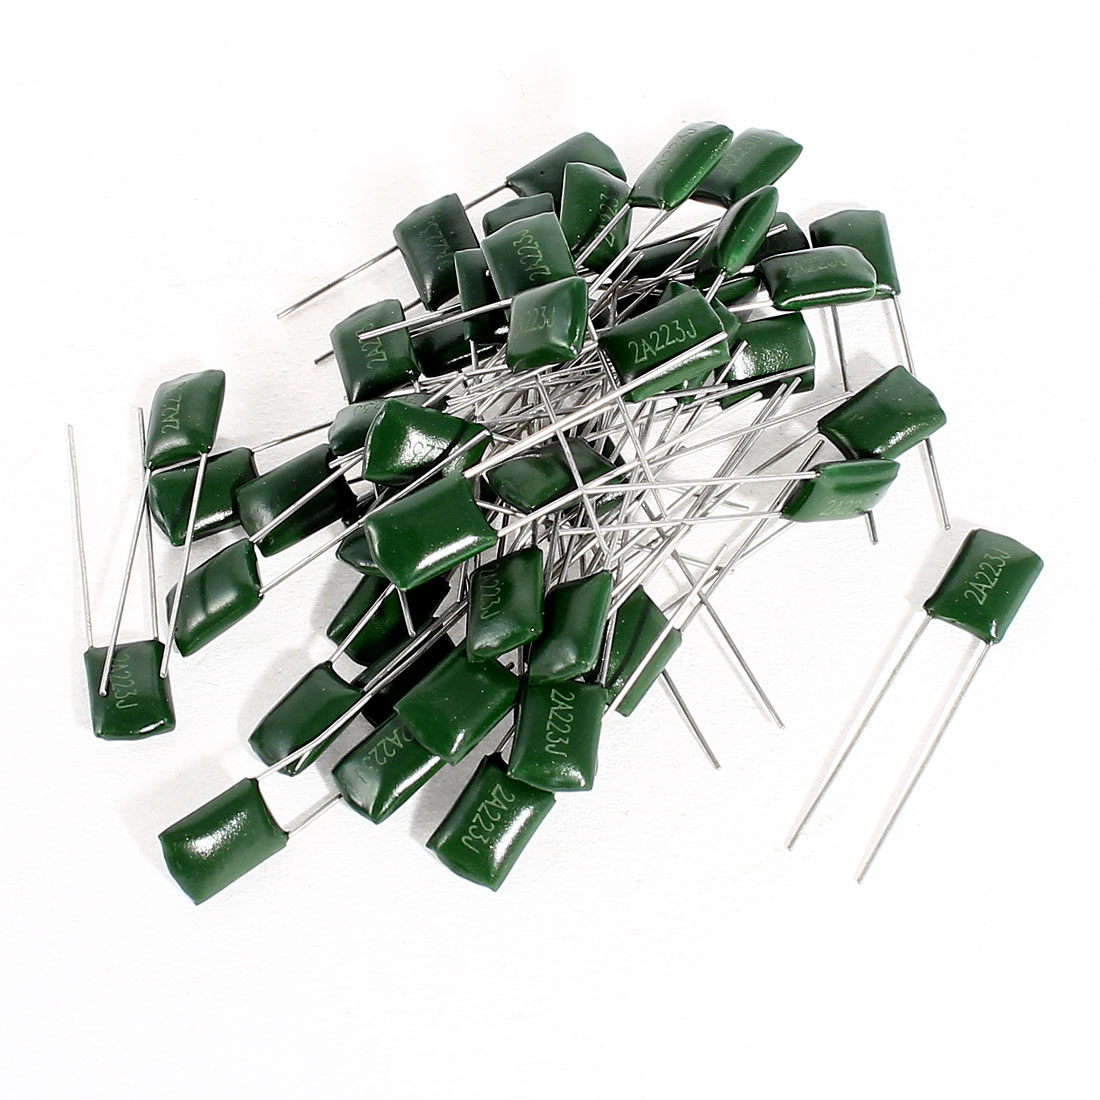 50 Pcs Radial Leads Polyester Film Cap Capacitance Capacitors Green 2A223J 100V 22nF 5%